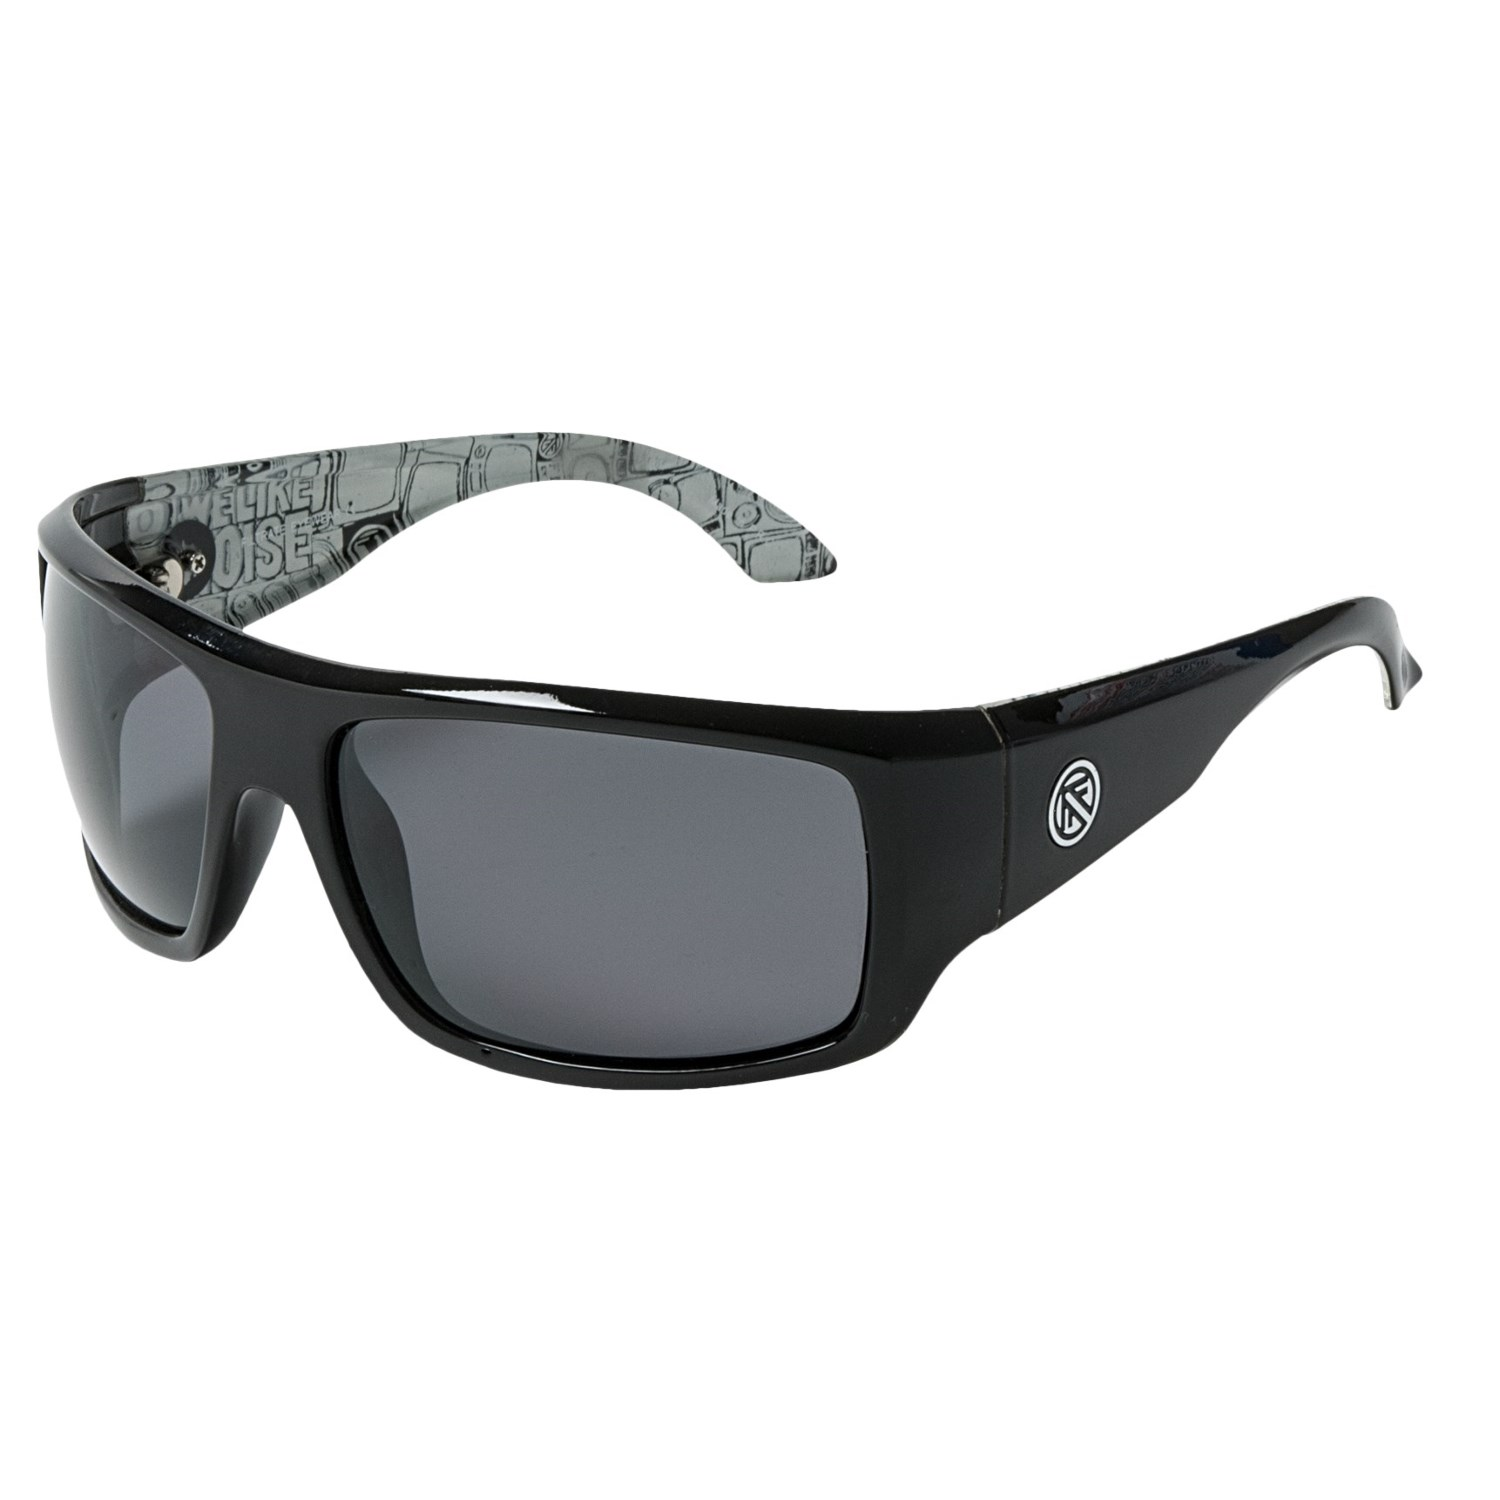 filtrate trader one sport wrap sunglasses polarized